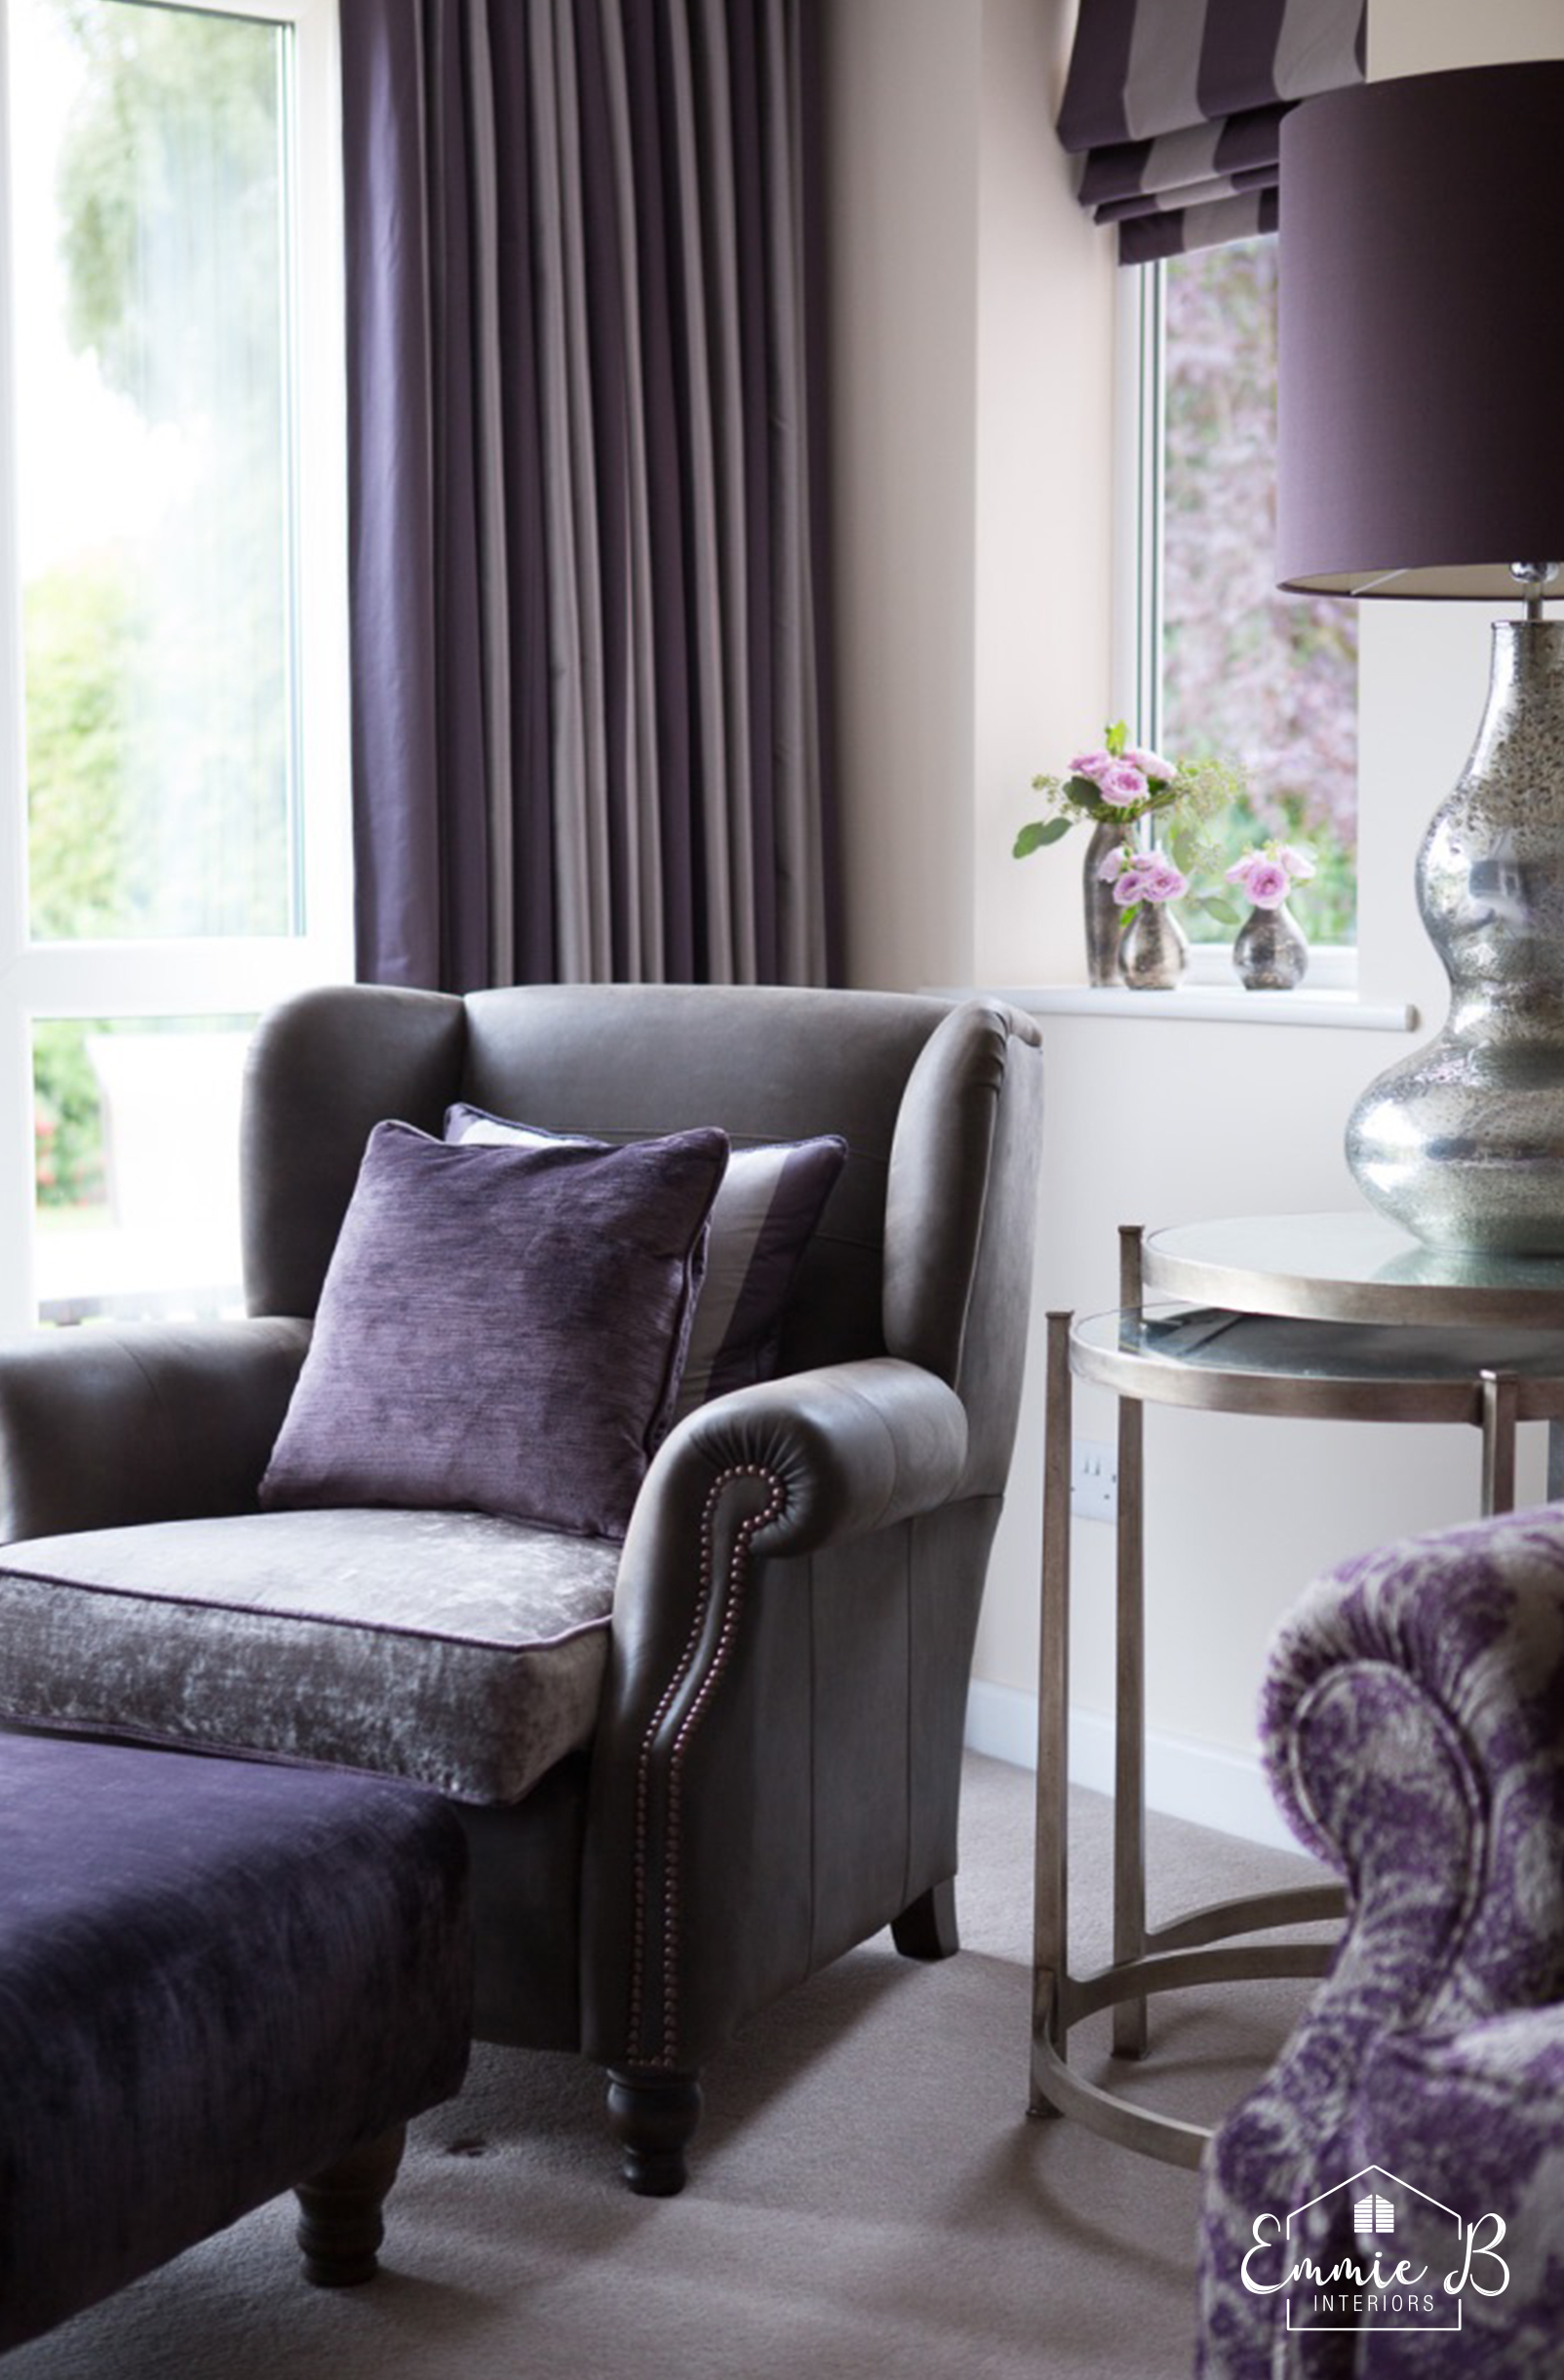 living space interior design Cheshire